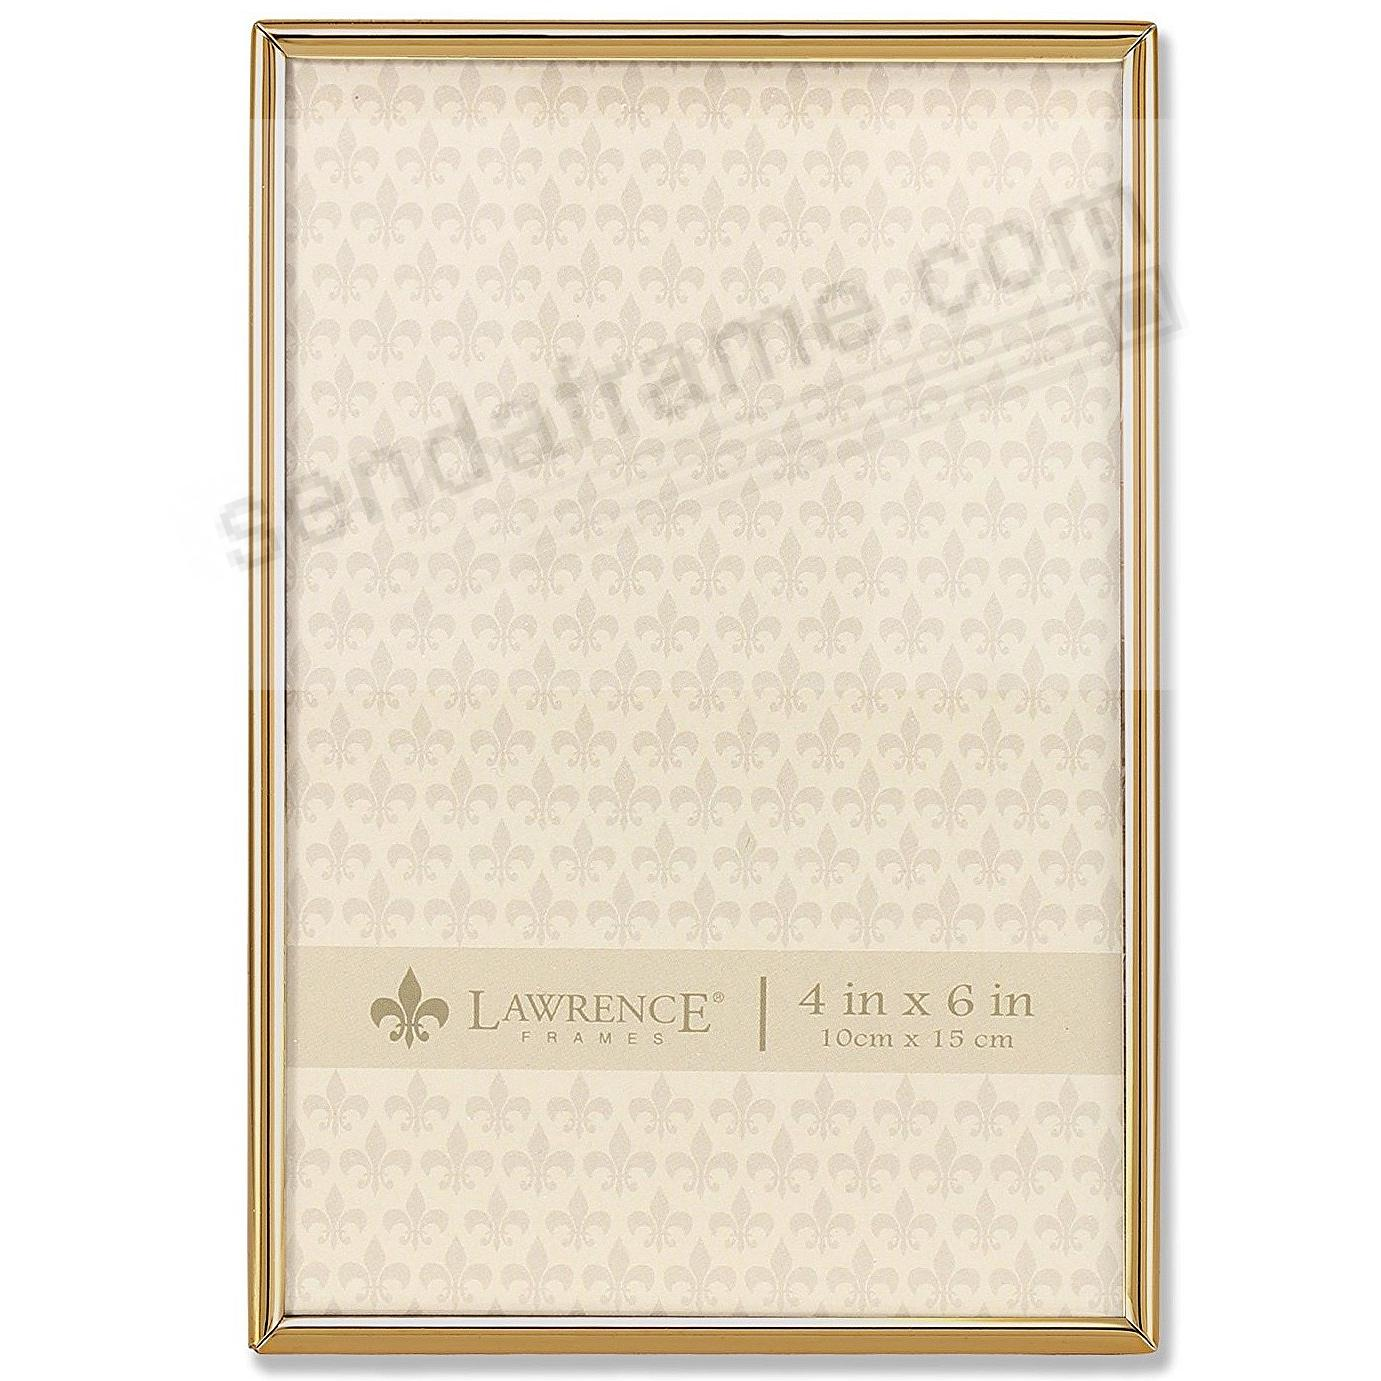 Polished SIMPLY GOLD 4x6 frame by Lawrence®